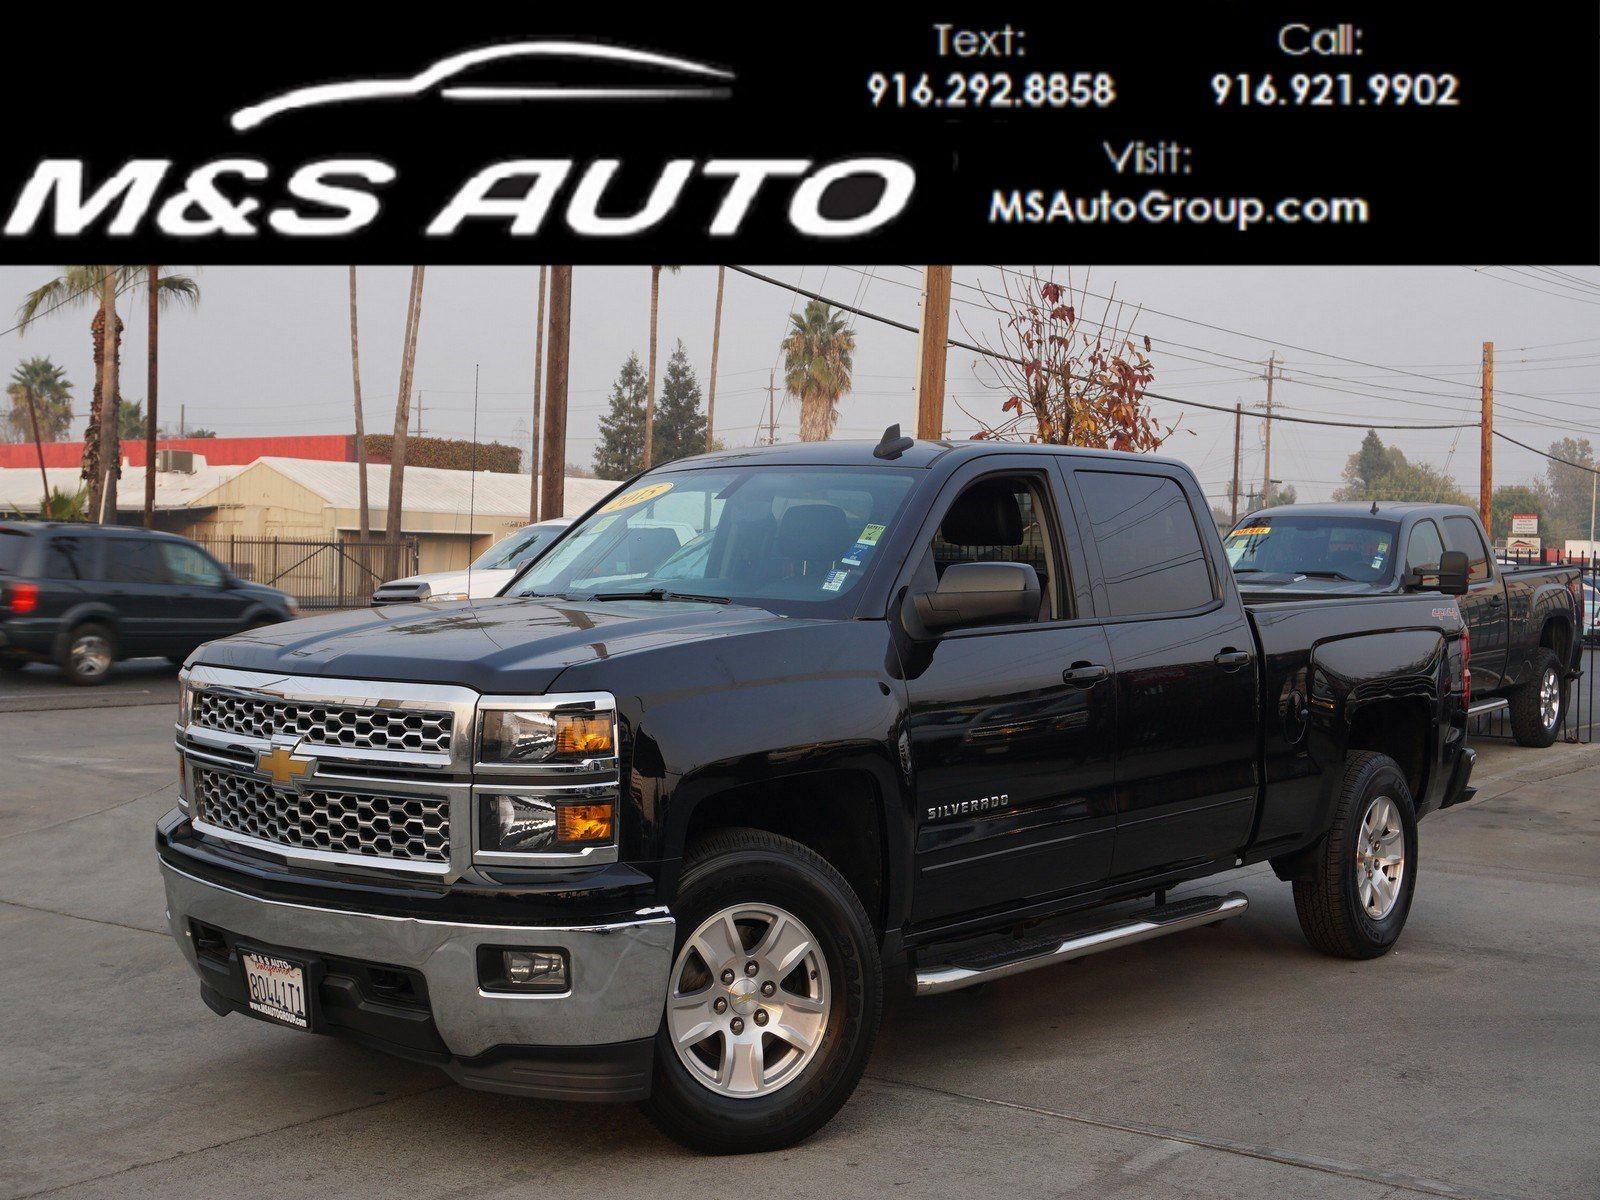 2015 Chevrolet Silverado 1500 Double Cab >> Pre Owned 2015 Chevrolet Silverado 1500 Lt Crew Cab Pickup In